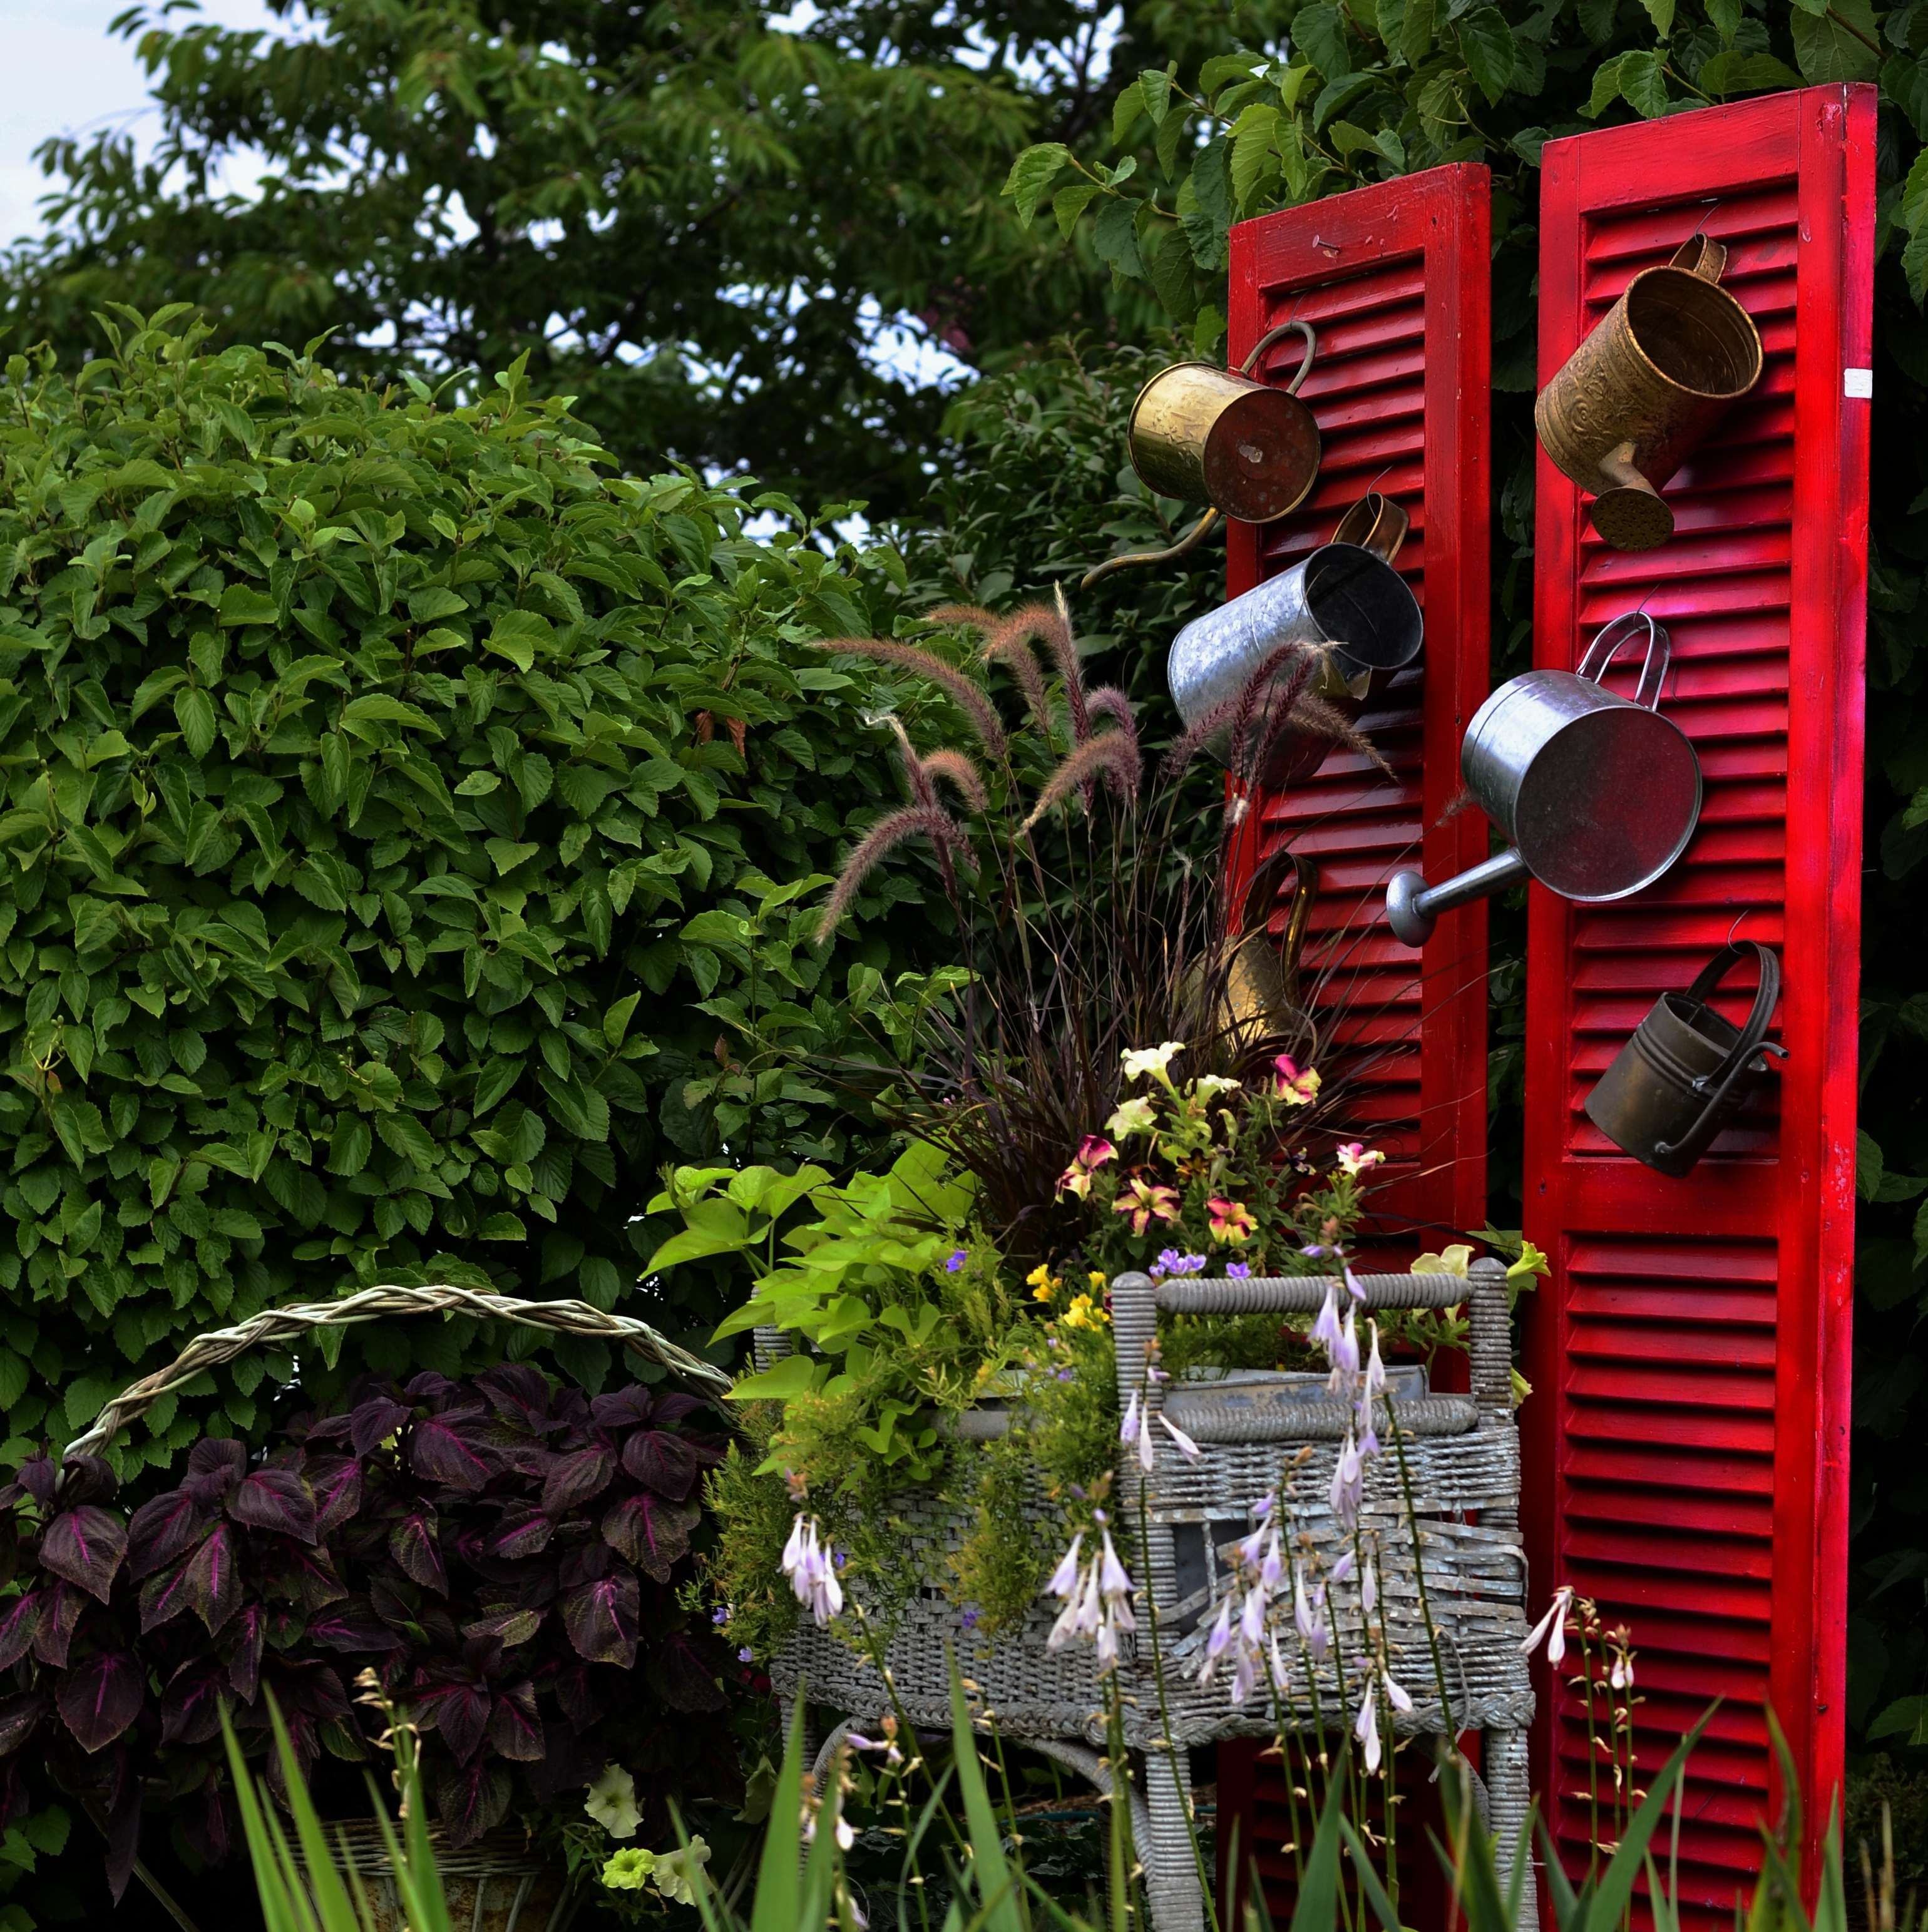 Another colorful garden idea from the 2013 elkhart county